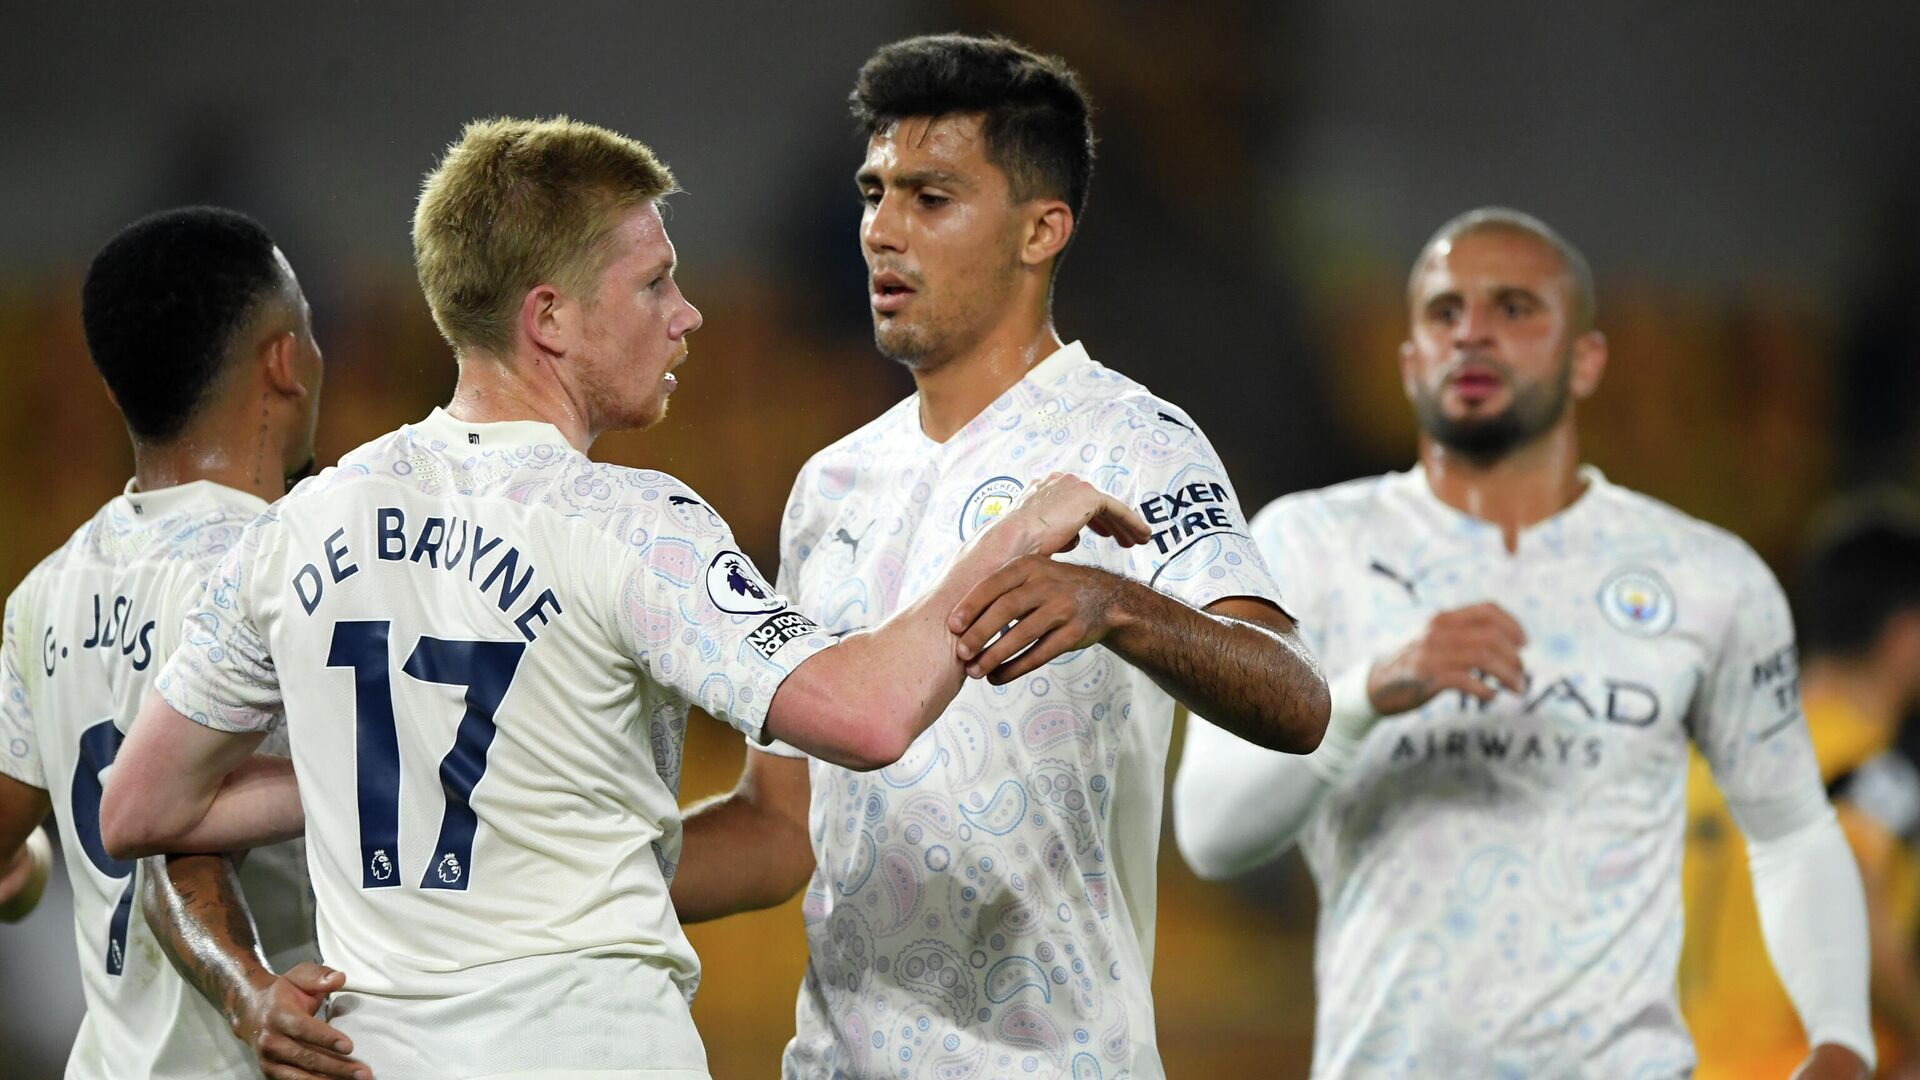 Manchester City's Belgian midfielder Kevin De Bruyne (L) celebrates scoring his team's first goal from the penalty spot during the English Premier League football match between Wolverhampton Wanderers and Manchester City at the Molineux stadium in Wolverhampton, central England on September 21, 2020. (Photo by Stu Forster / POOL / AFP) / RESTRICTED TO EDITORIAL USE. No use with unauthorized audio, video, data, fixture lists, club/league logos or 'live' services. Online in-match use limited to 120 images. An additional 40 images may be used in extra time. No video emulation. Social media in-match use limited to 120 images. An additional 40 images may be used in extra time. No use in betting publications, games or single club/league/player publications. /  - РИА Новости, 1920, 22.09.2020